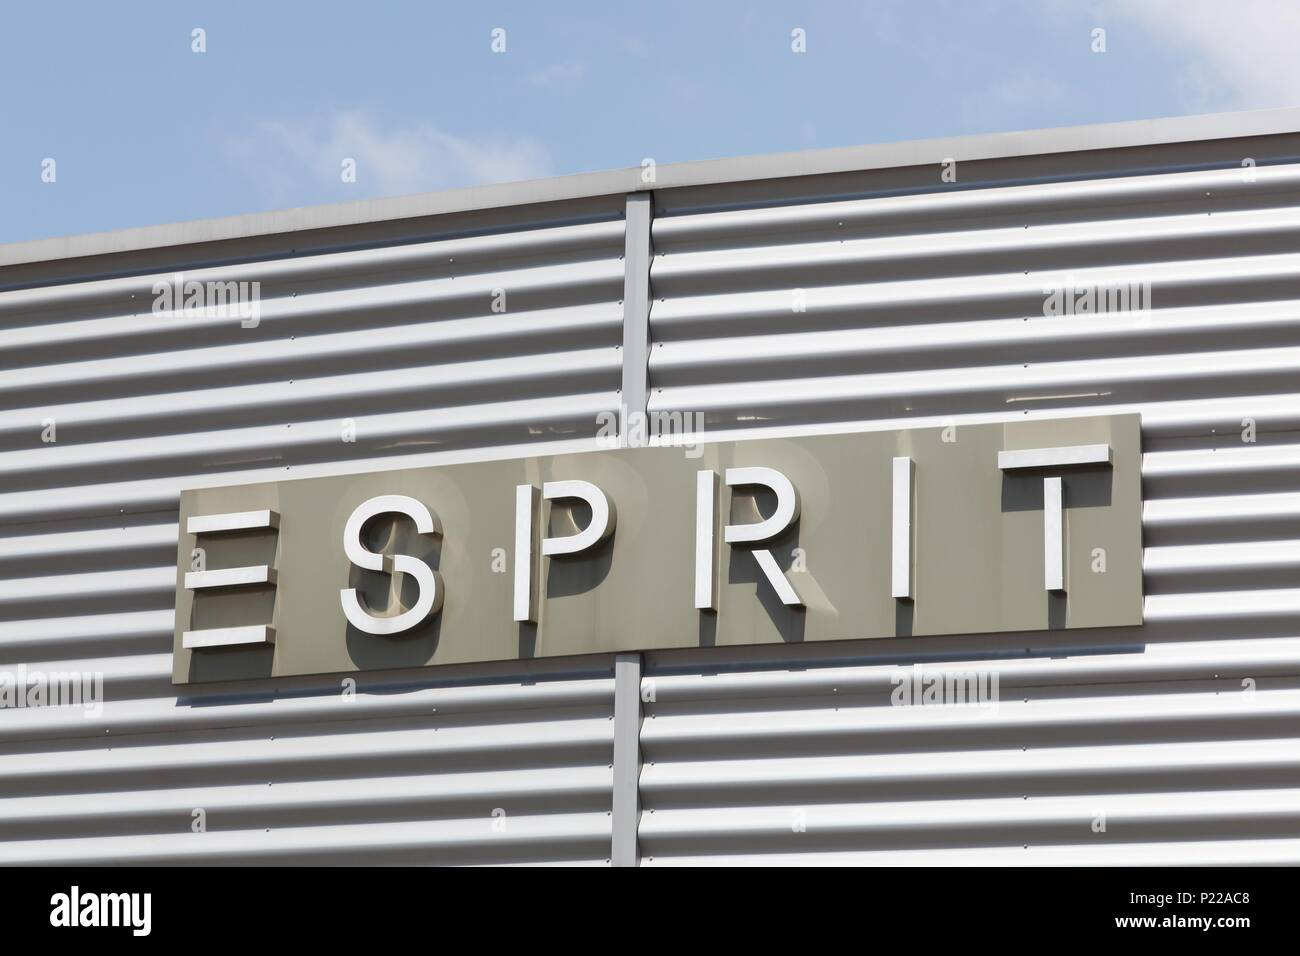 Esprit Logo amp; The Of Photos Company A00xrEzfqw